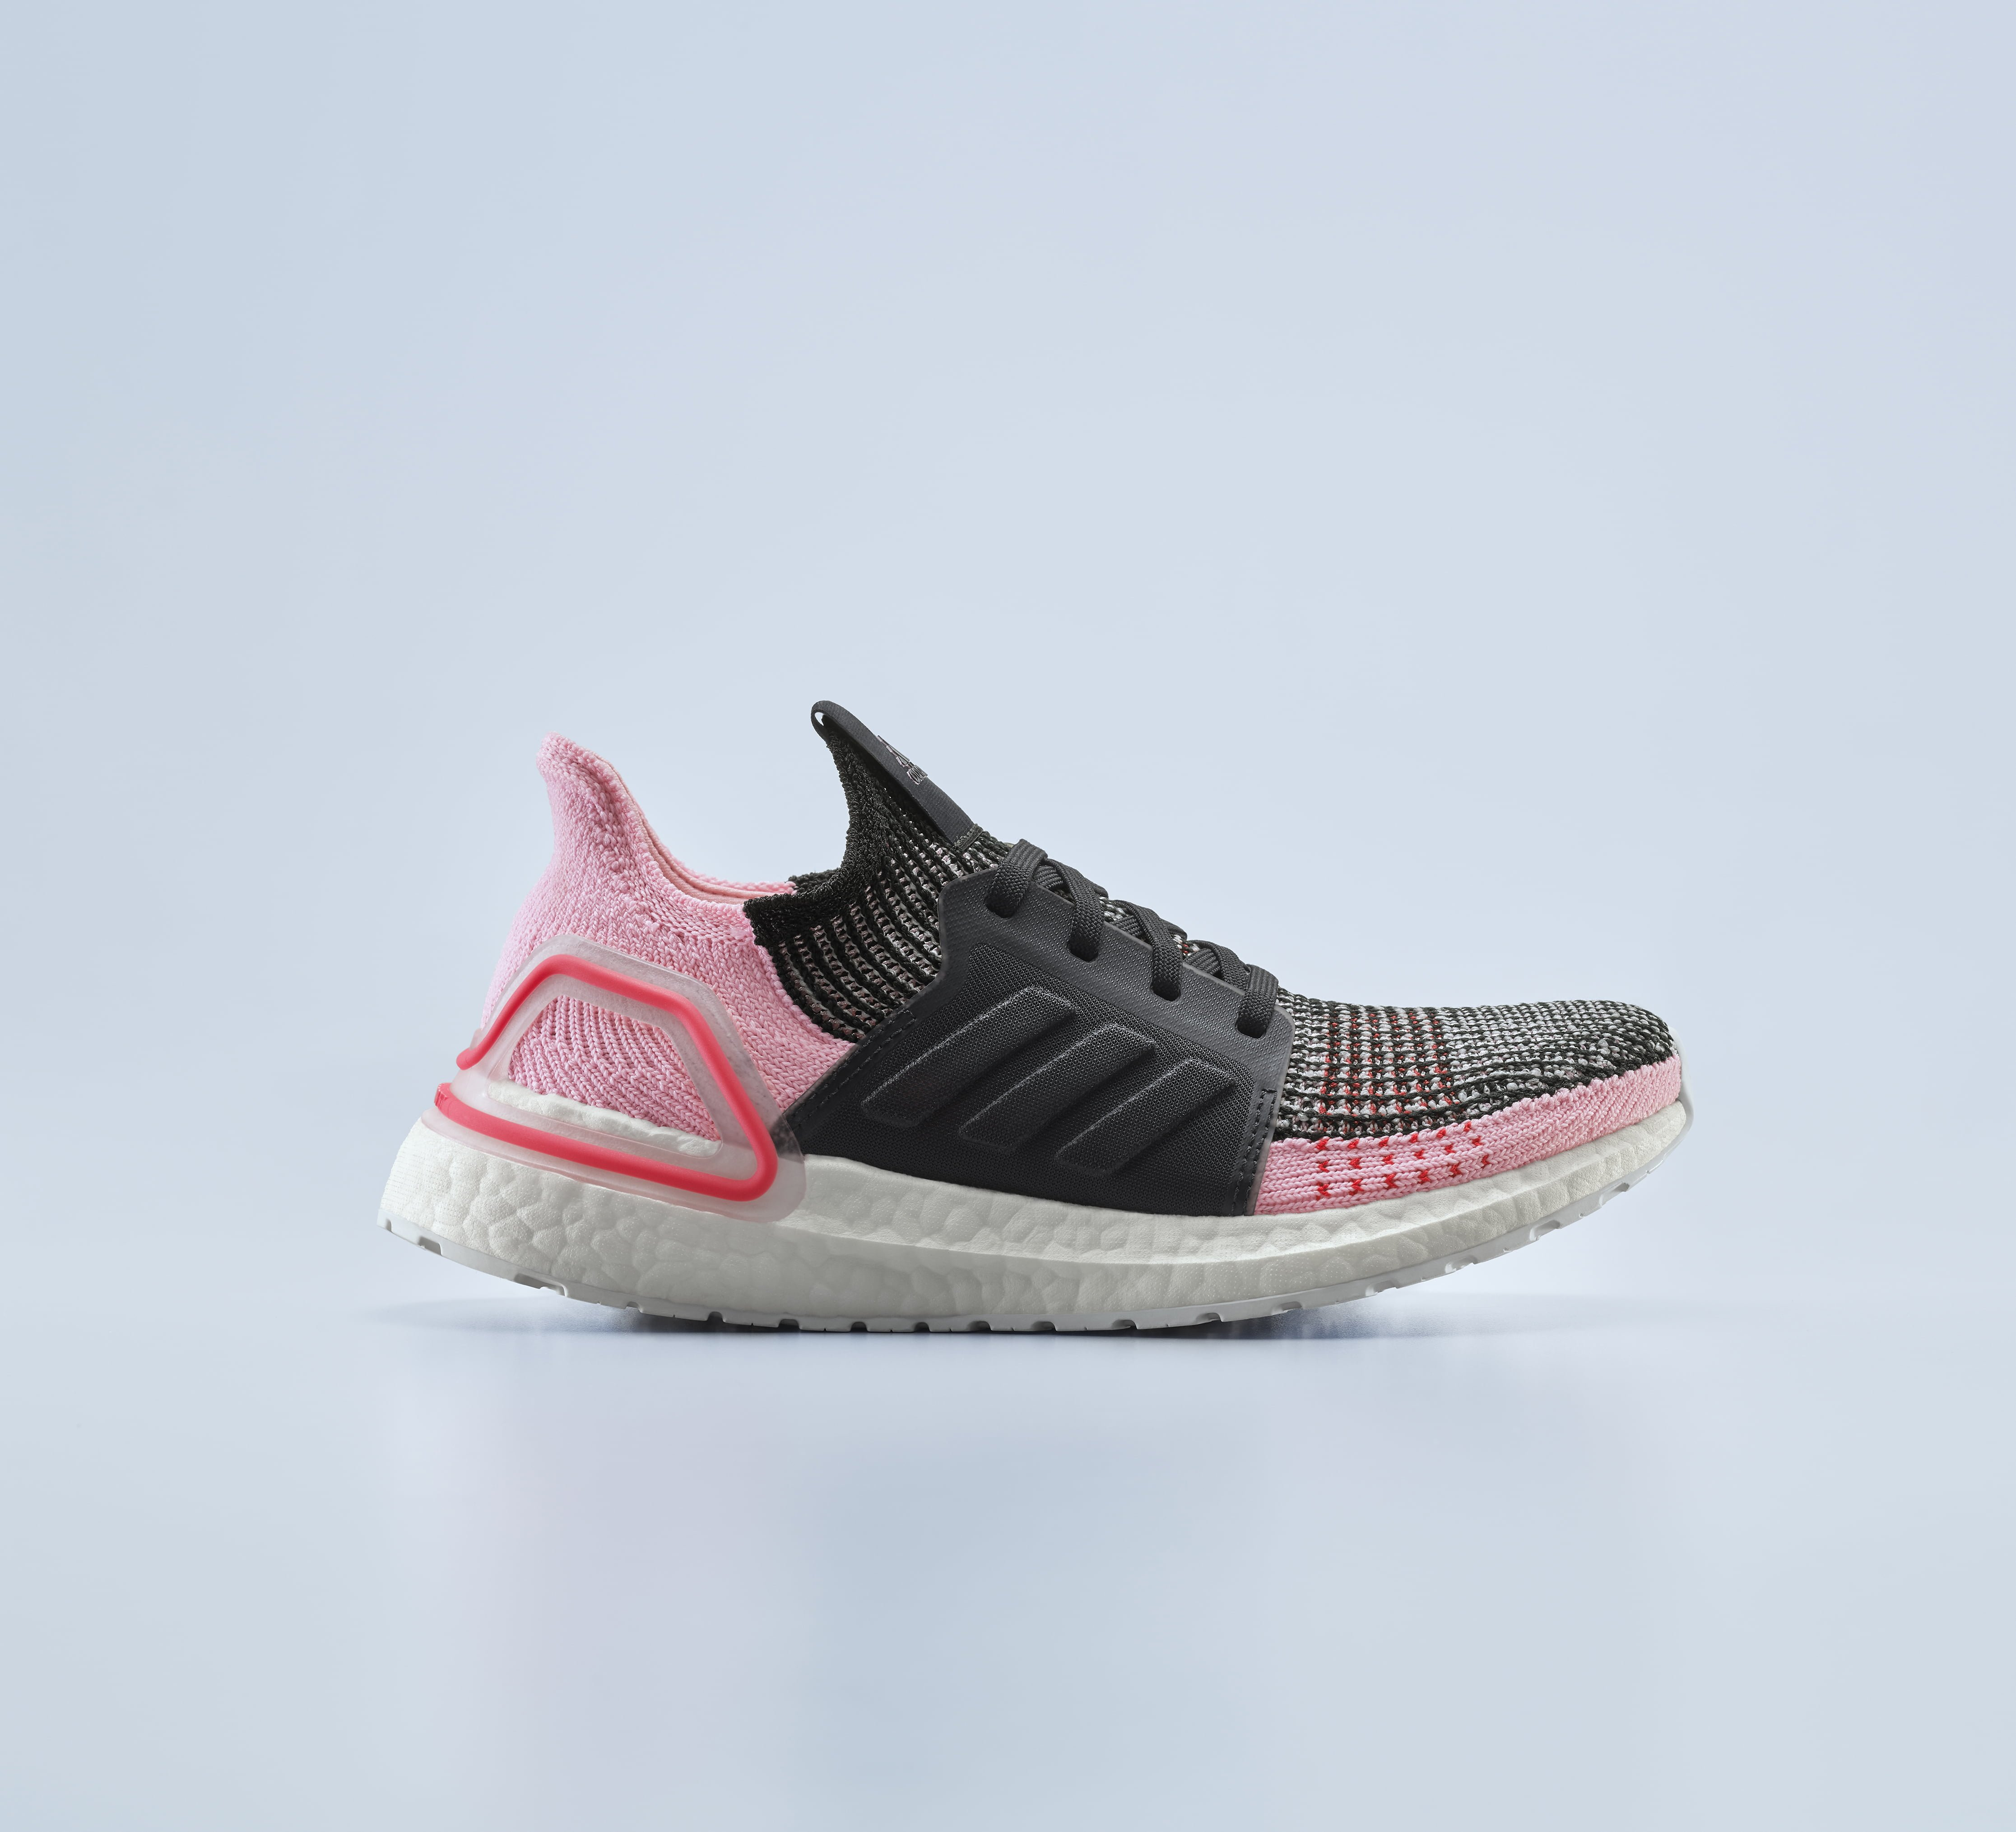 low priced f6a2e 5a01c Bat Orchid s release comes in the lead-up to the launch of the new adidas  Ultraboost 19, the totally redesigned flagship running shoe for 2019.